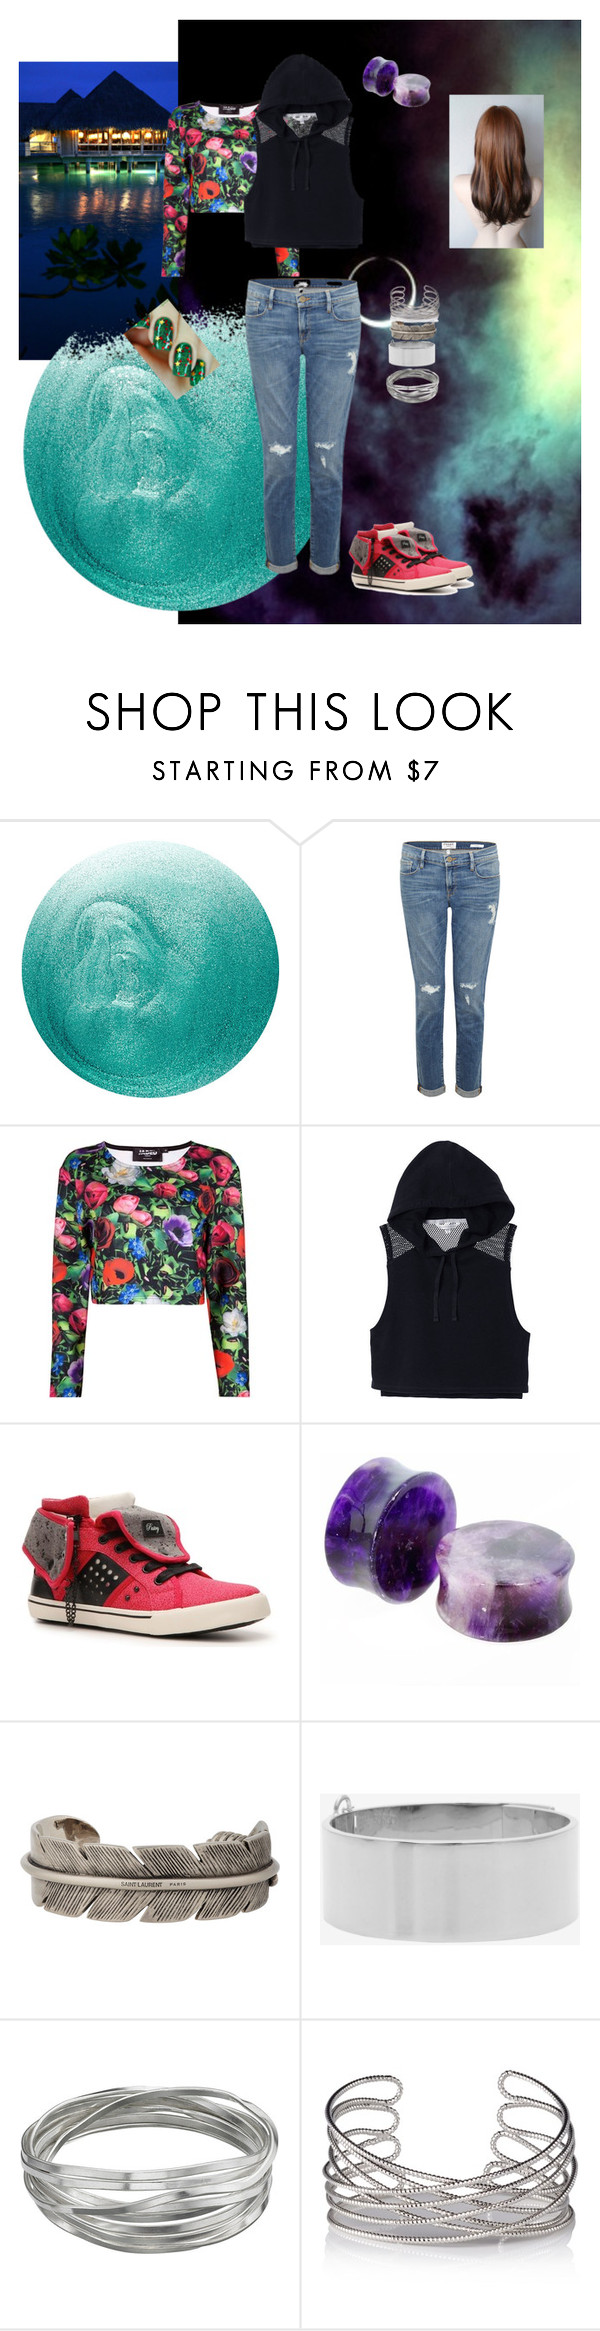 Styx by smthin0-0diffrnt on Polyvore featuring Victoria's Secret, Frame Denim, Pastry, Eddie Borgo, Whistles, Yves Saint Laurent and Deborah Lippmann